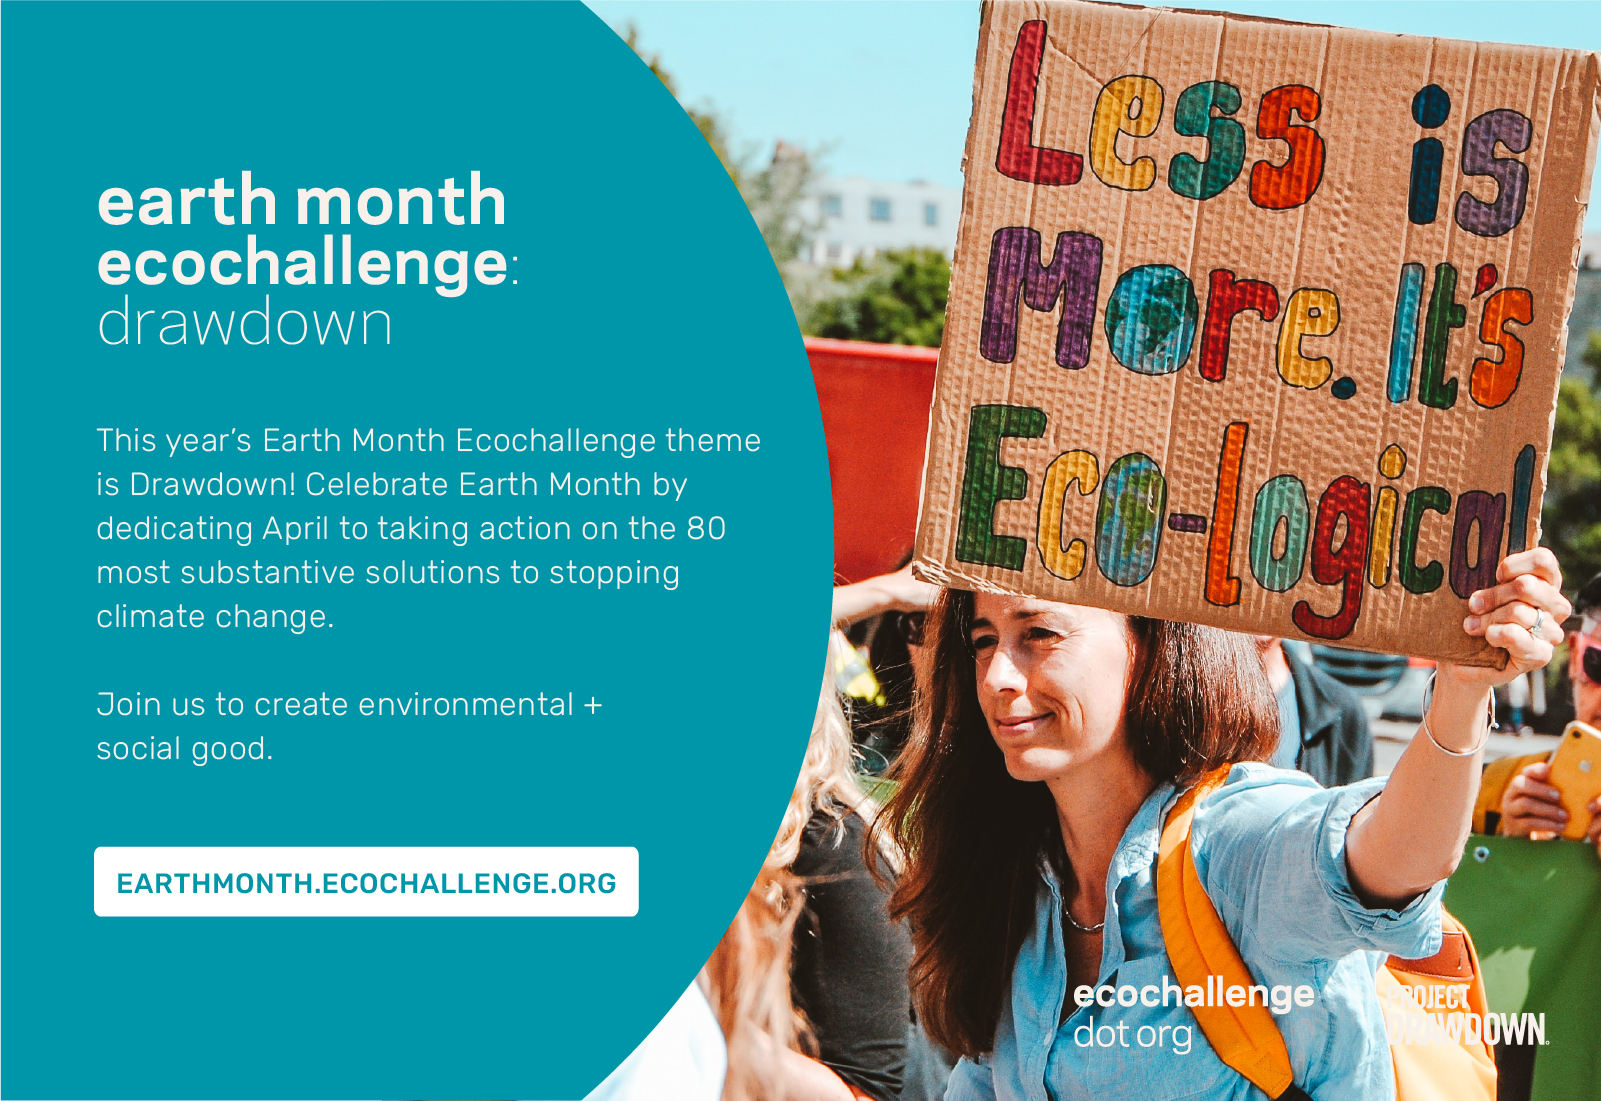 WePledge 1% Cause of the Month: 3 Ways to Celebrate Earth Month - Twilio